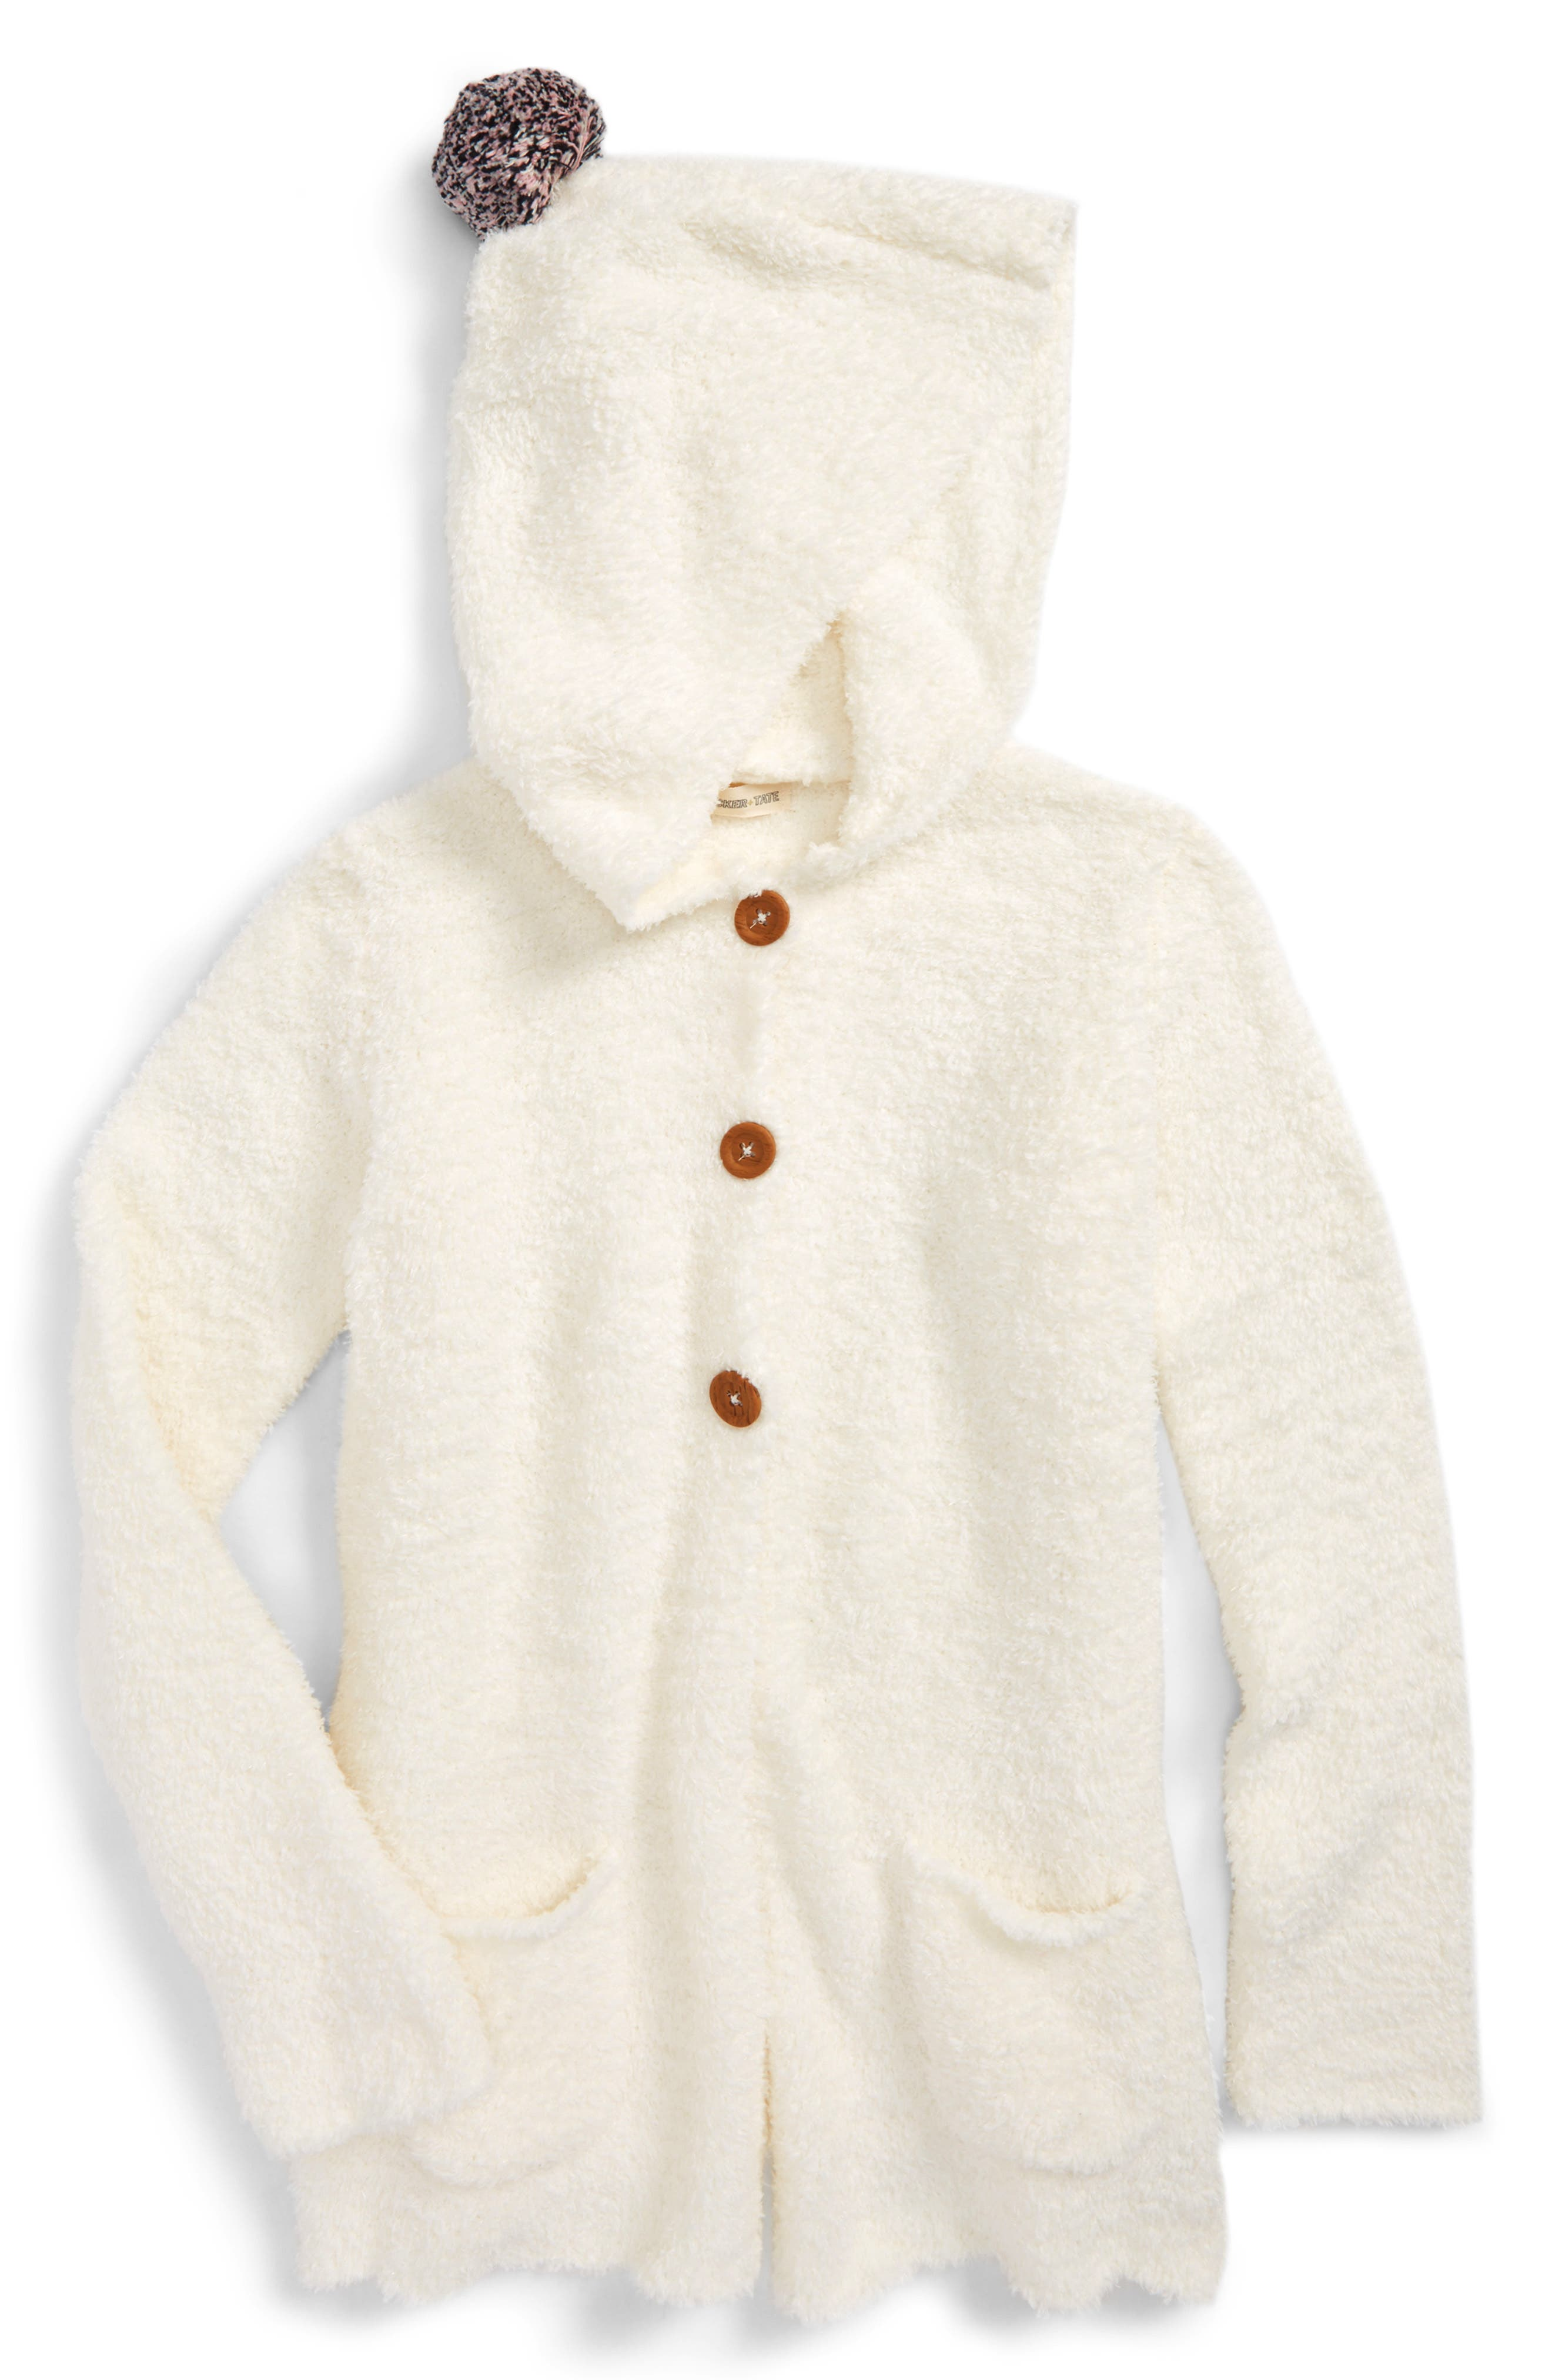 Alternate Image 1 Selected - Tucker + Tate Cozy Hooded Cardigan (Toddler Girls, Little Girls & Big Girls)